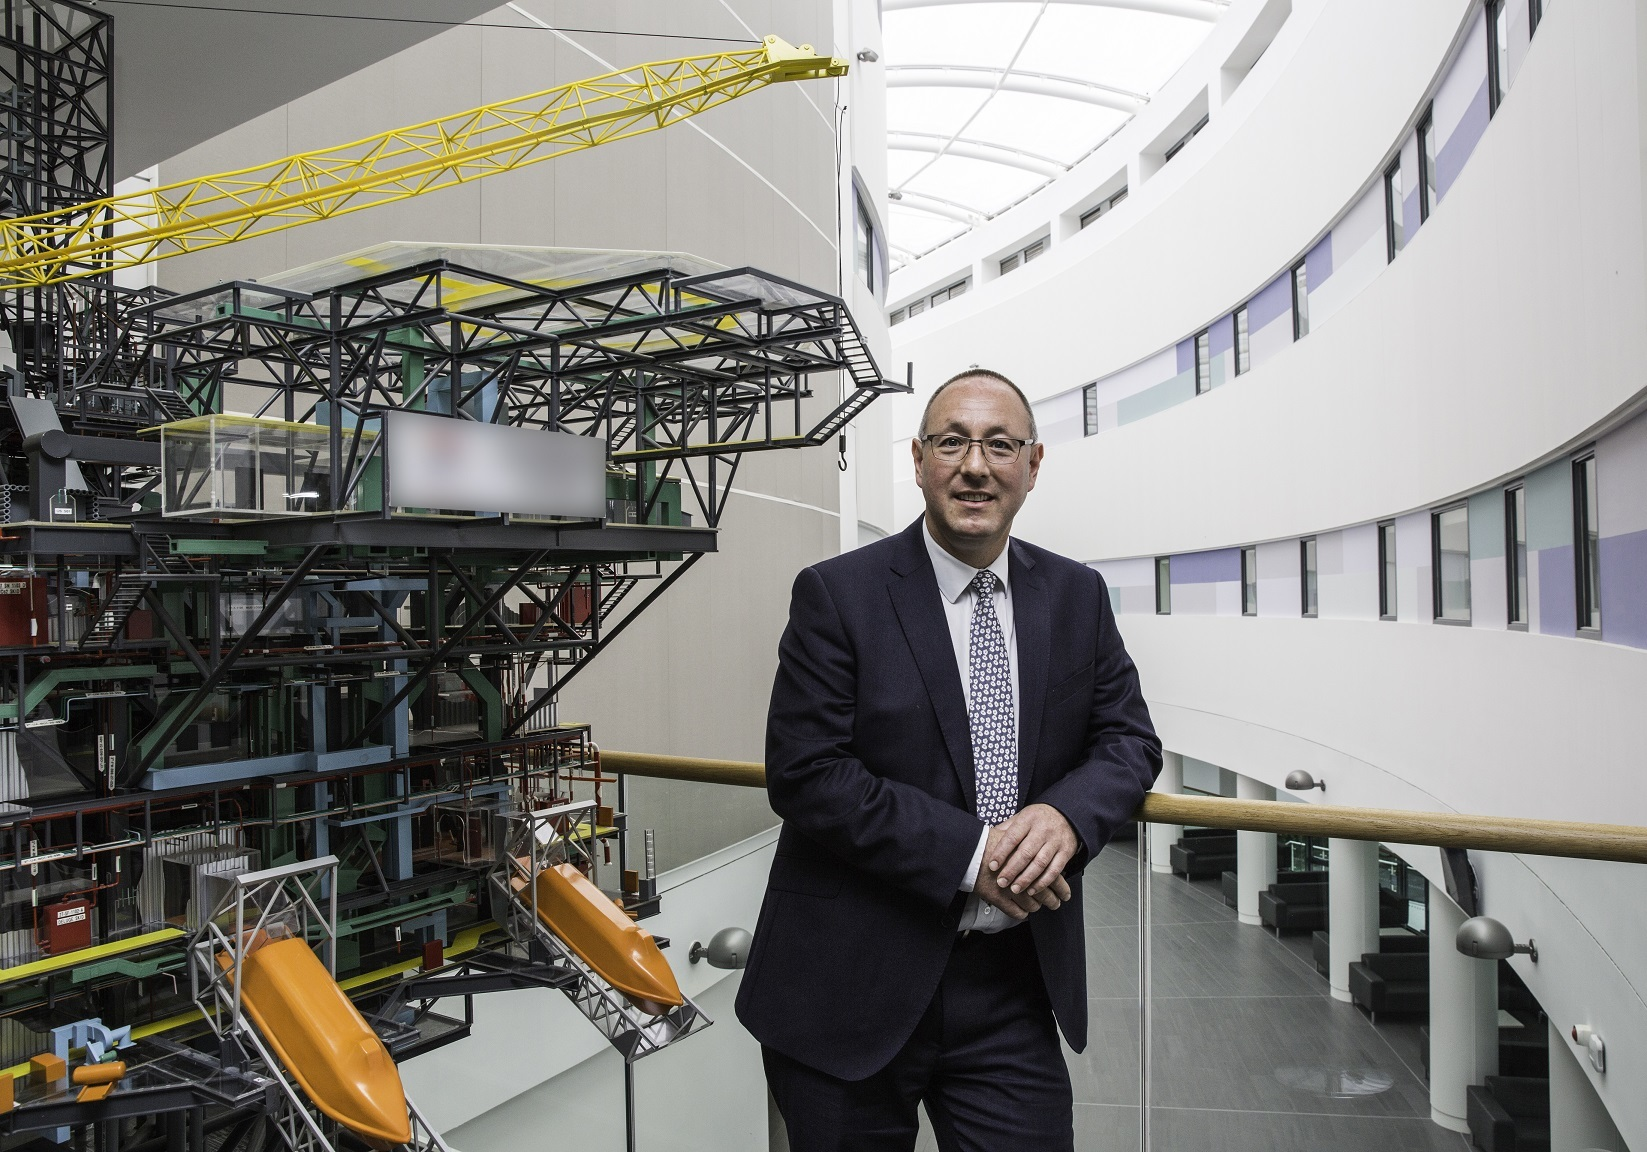 Professor Paul de Leeuw, director of RGU's Energy Transition Institute.